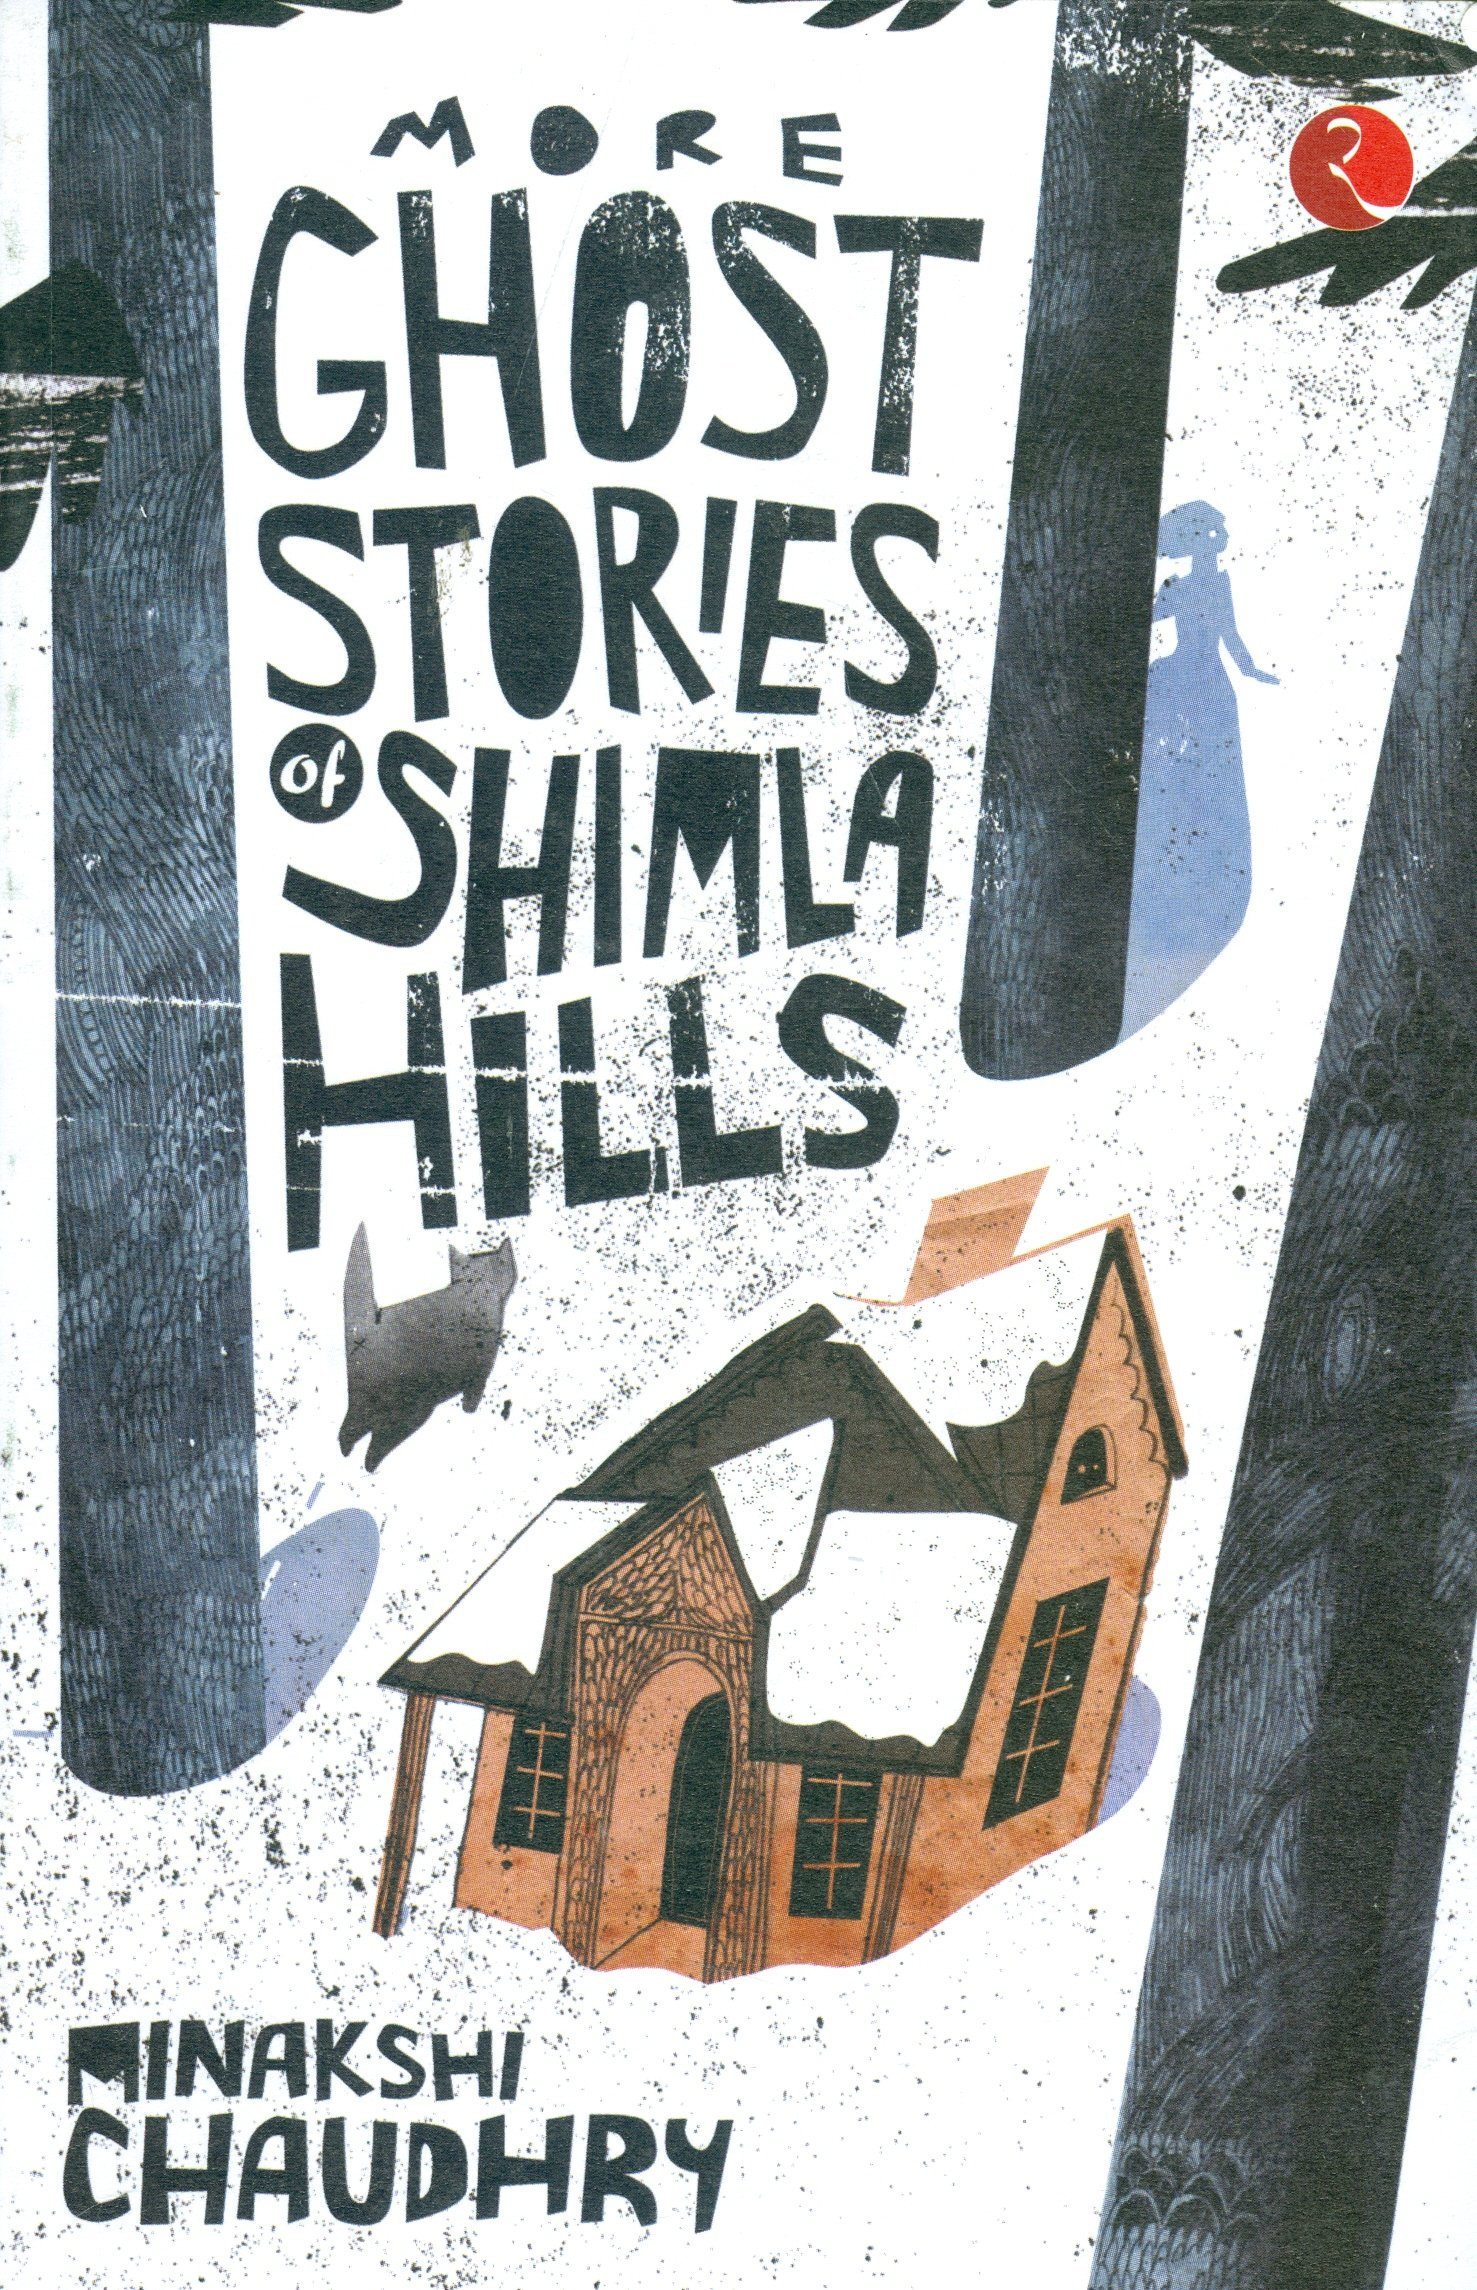 Link to Book Review: More Ghost Stories of Shimla Hills